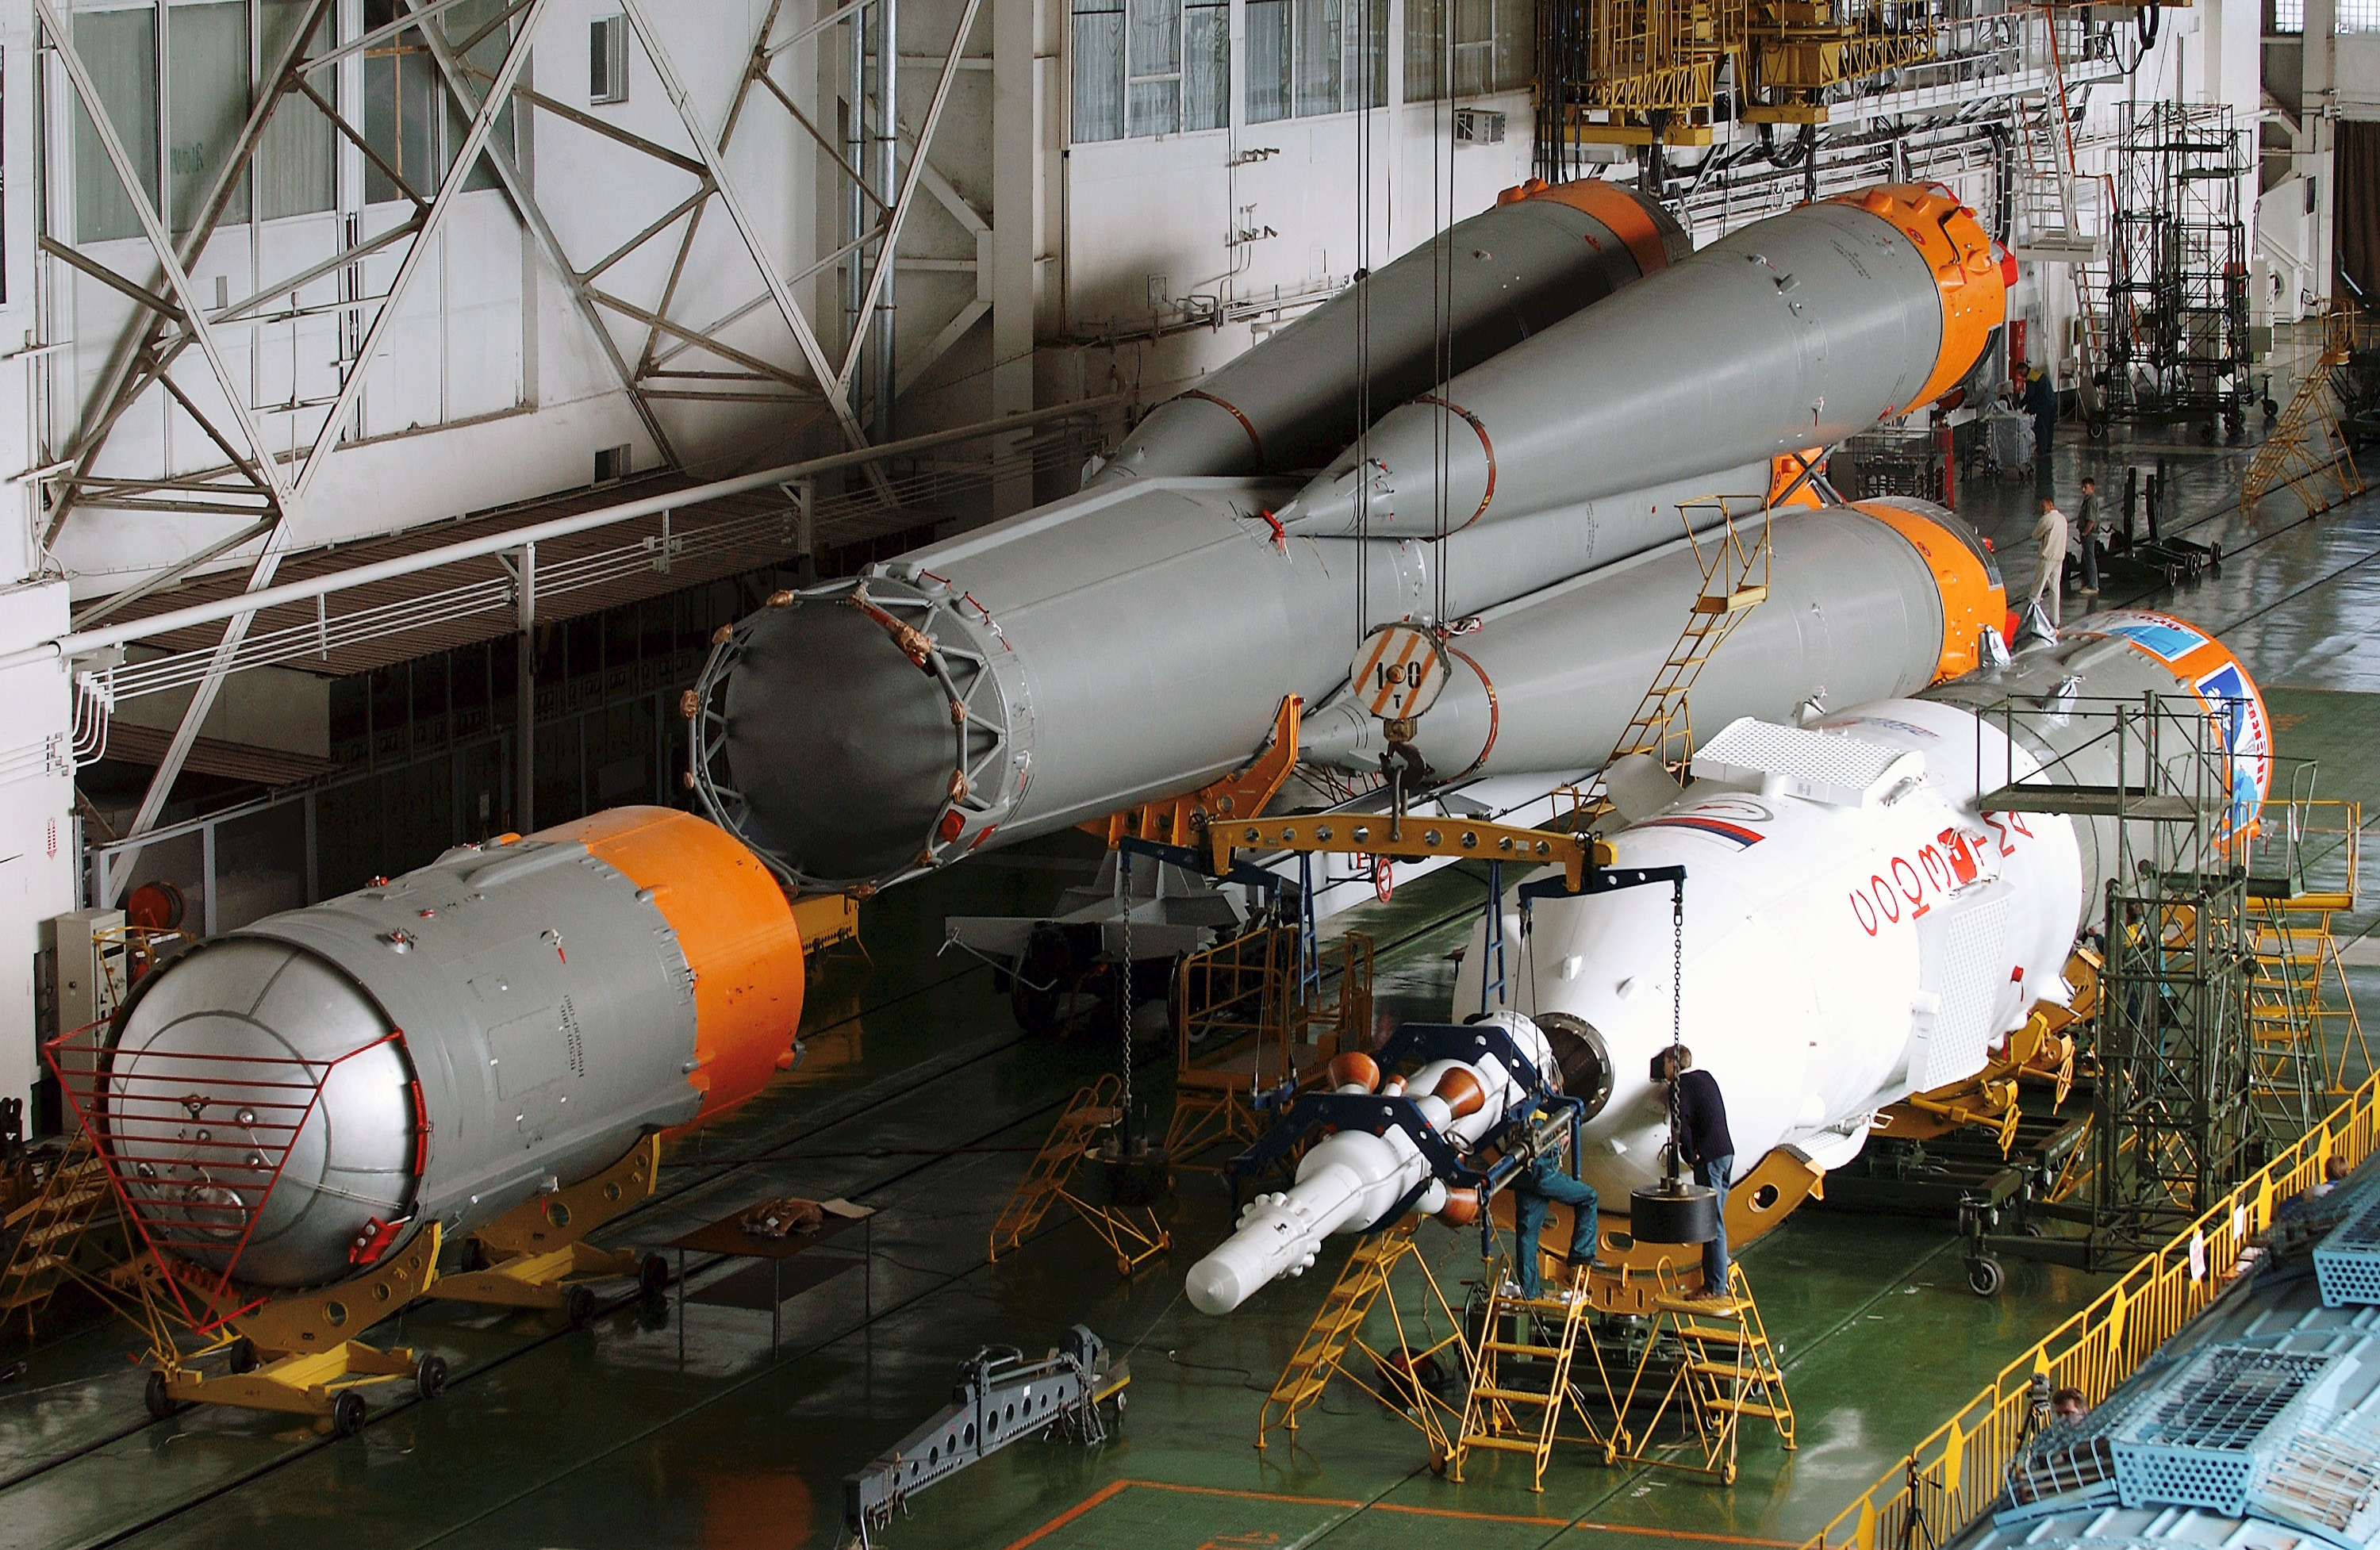 Abductions, UFOs and Nuclear Weapons : Soyuz Pictures